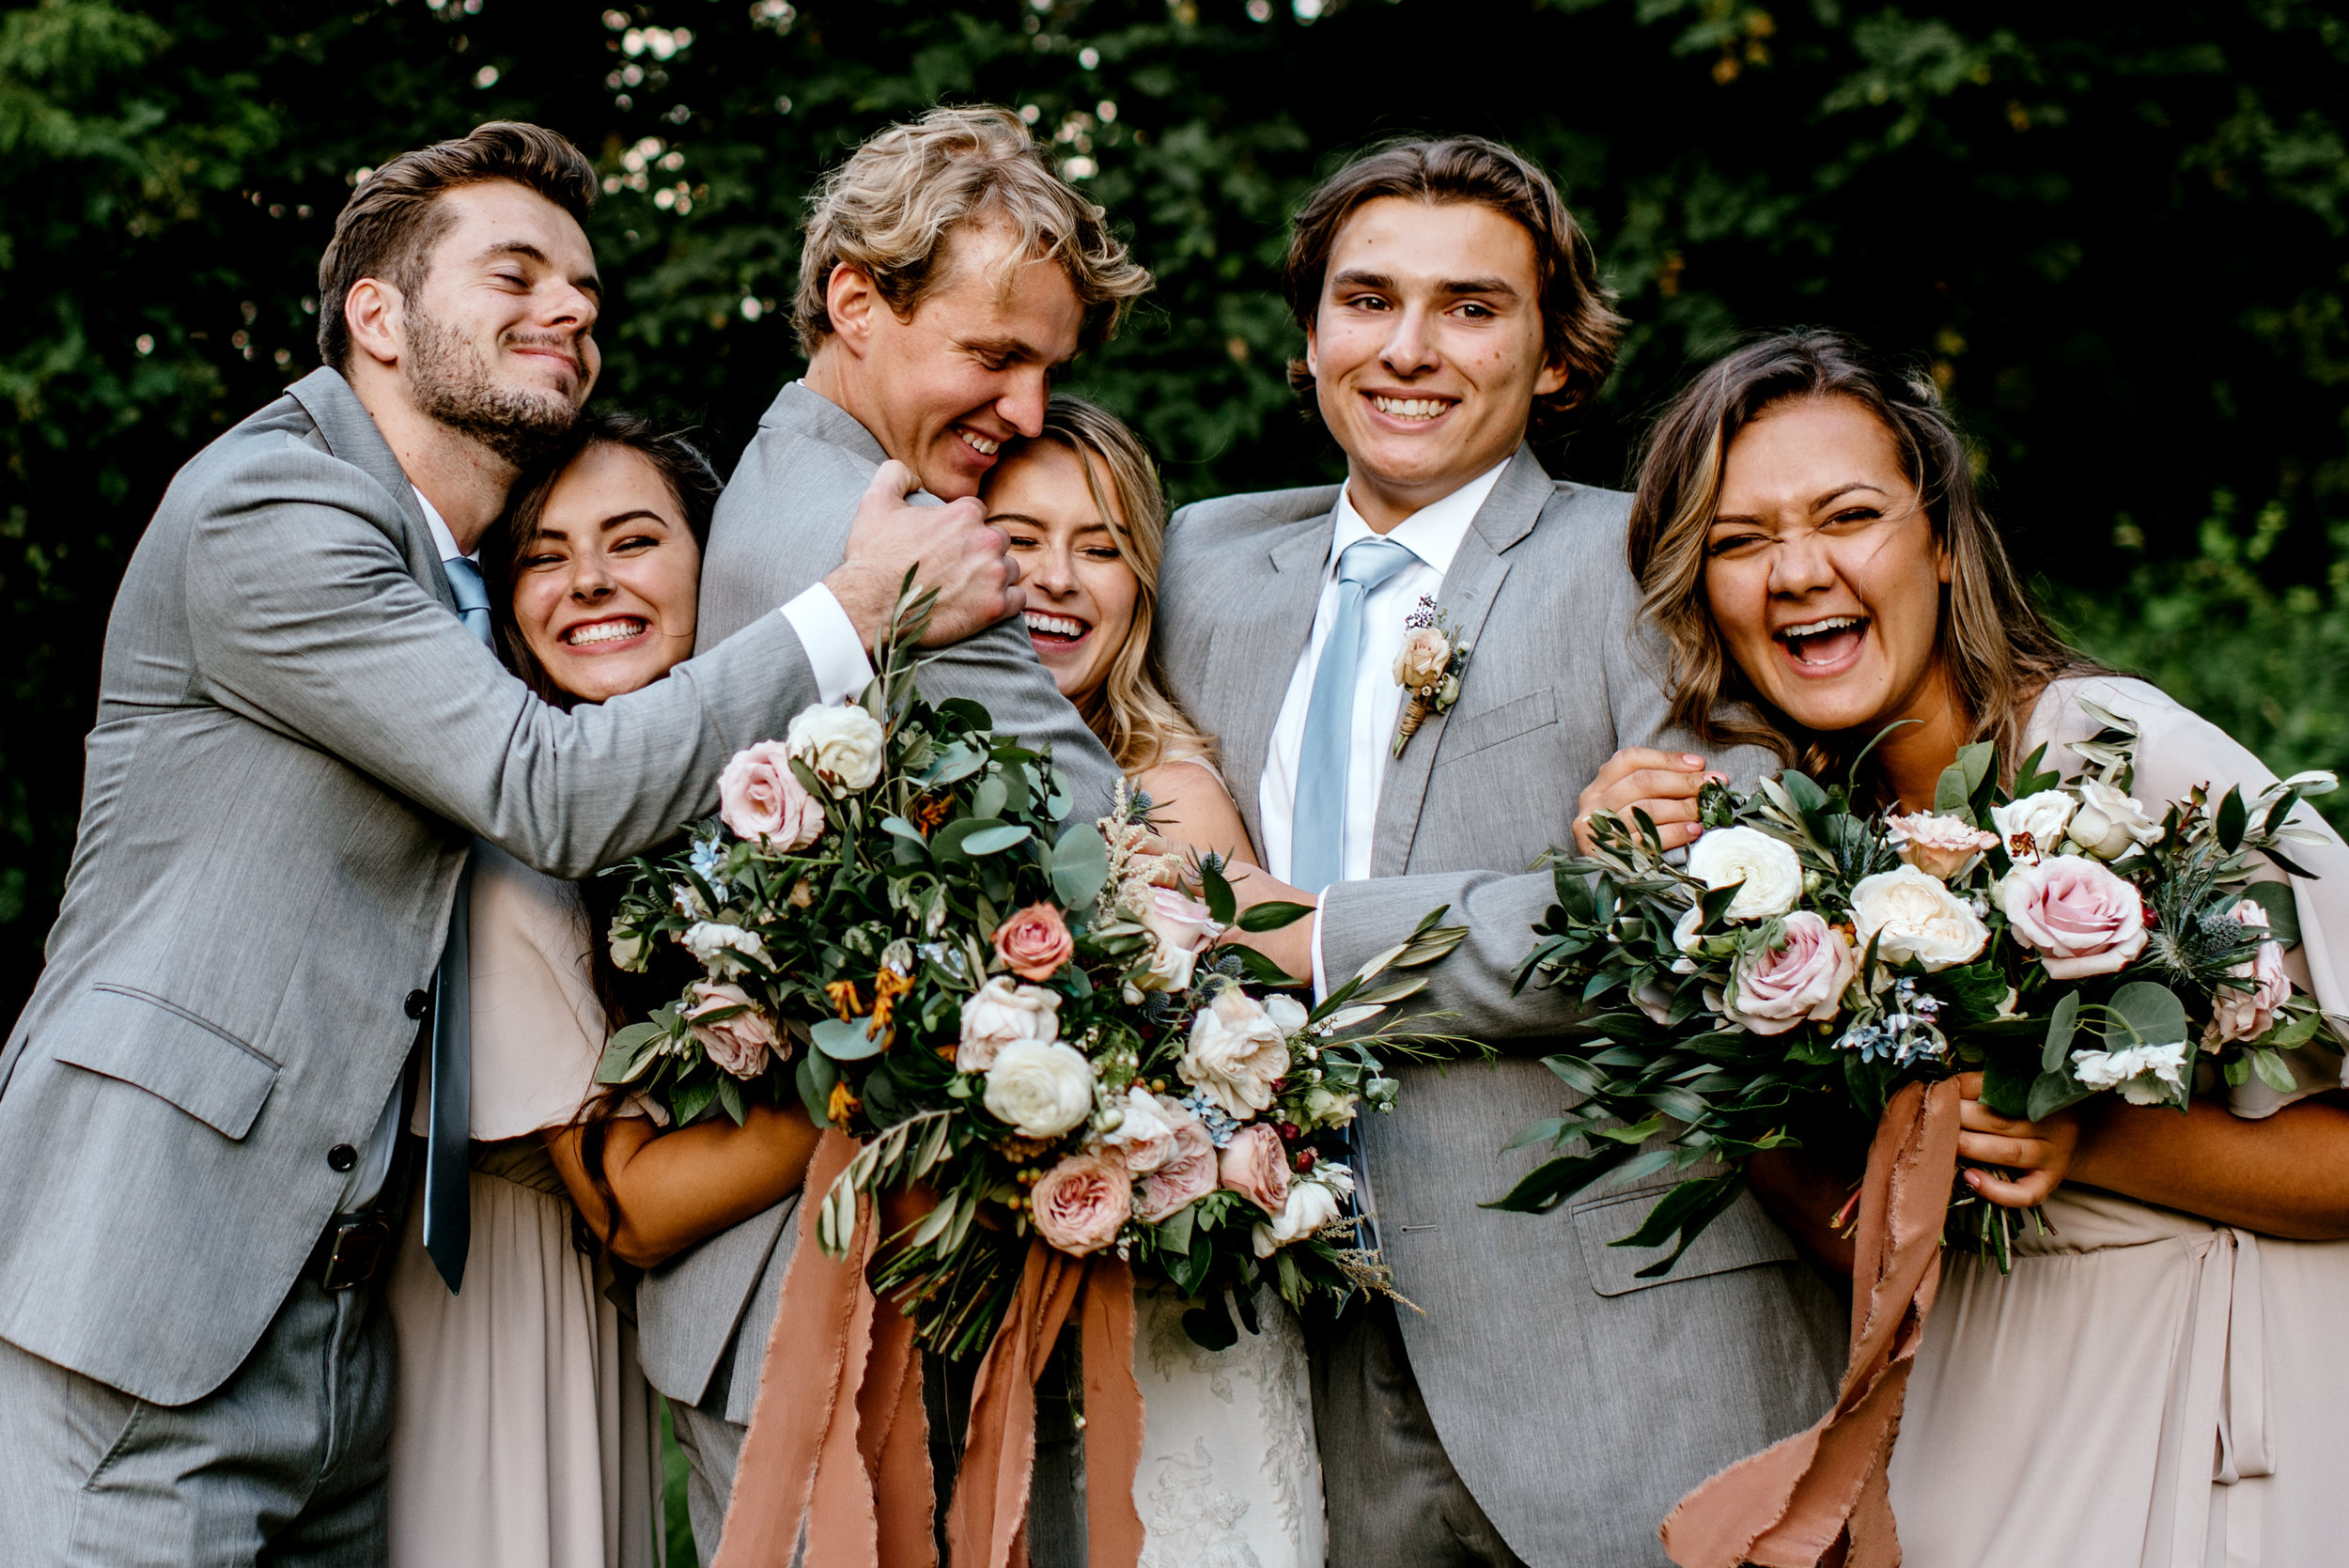 bridal party group hug with bride and groom